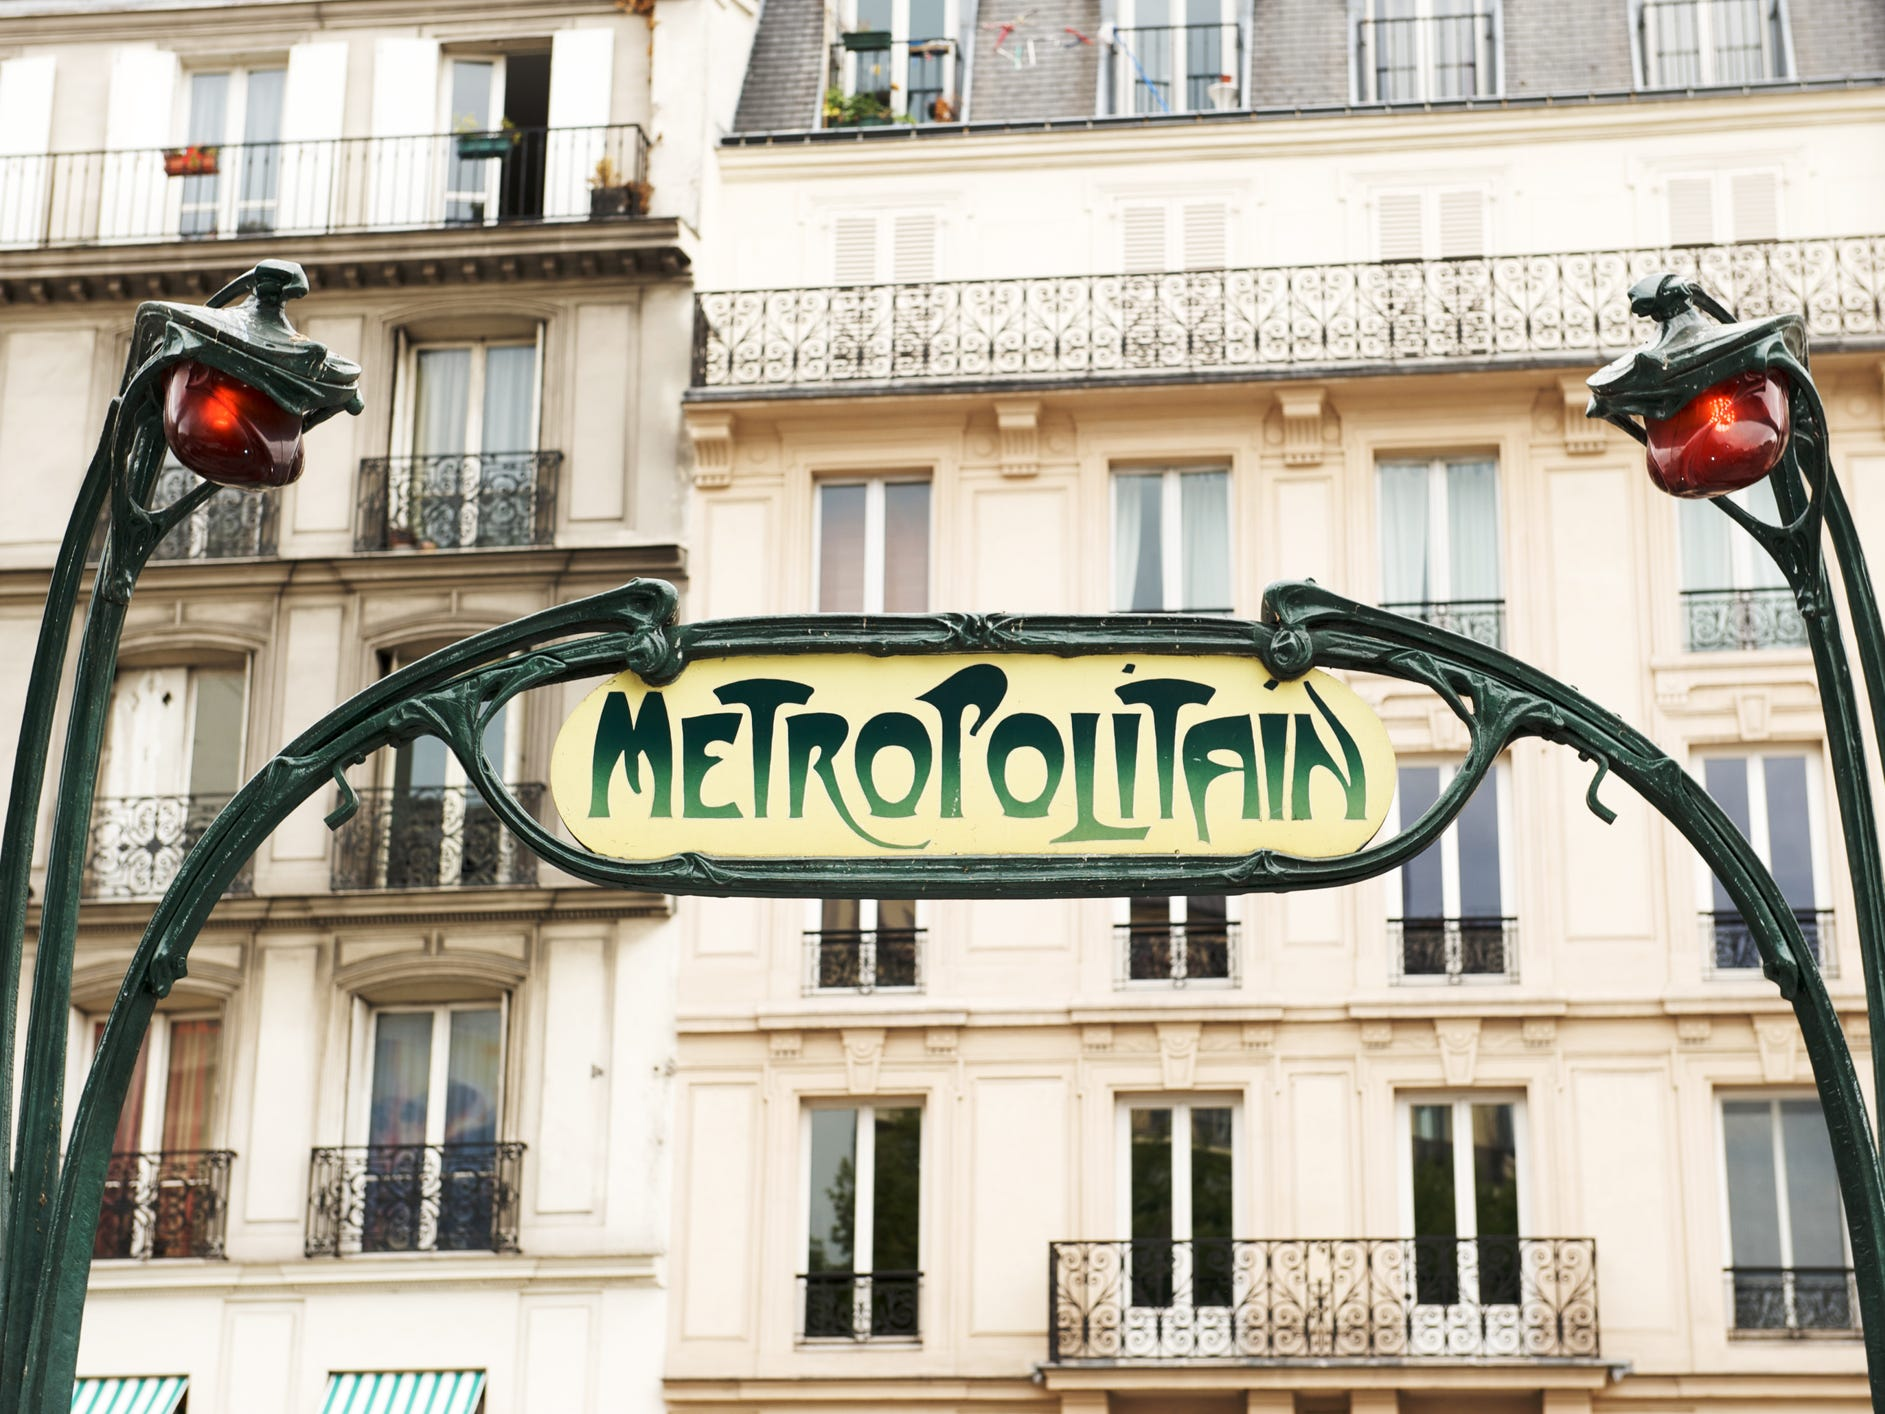 Paris: The venerable subway system in Paris — with its distinctive art deco-style Metropolitain signs marking many of the stations — has been carrying visitors and locals across the city since 1900. Its color-coded lines are easy to navigate, and the organization that operates the Metro, RATP, offers an app that works offline to help visitors find their way around.